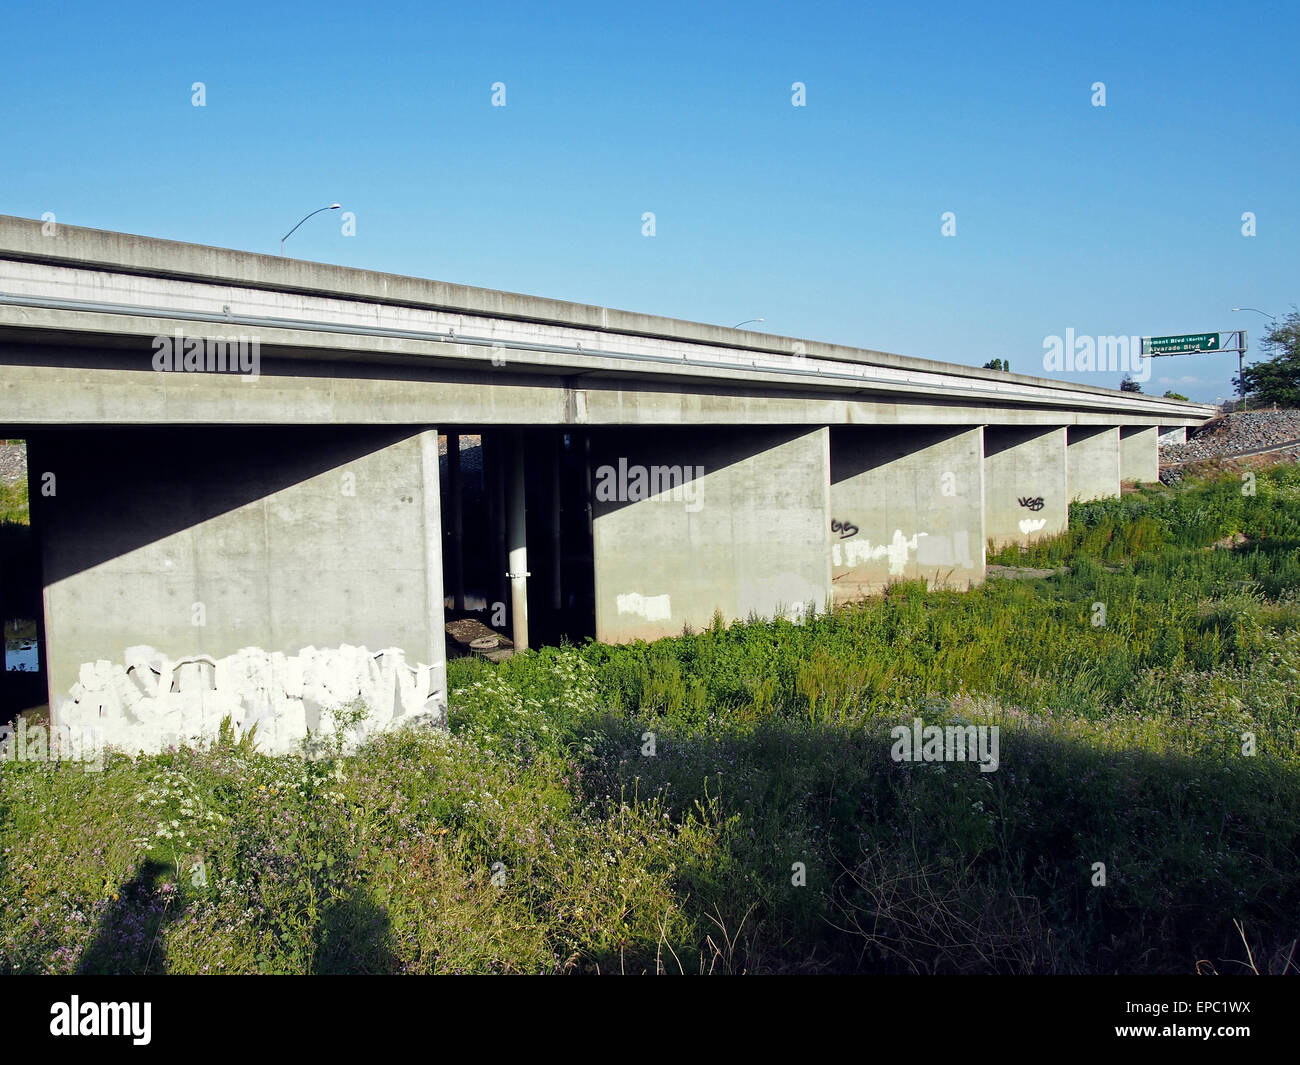 Interstate 880 Stock Photos & Interstate 880 Stock Images - Alamy